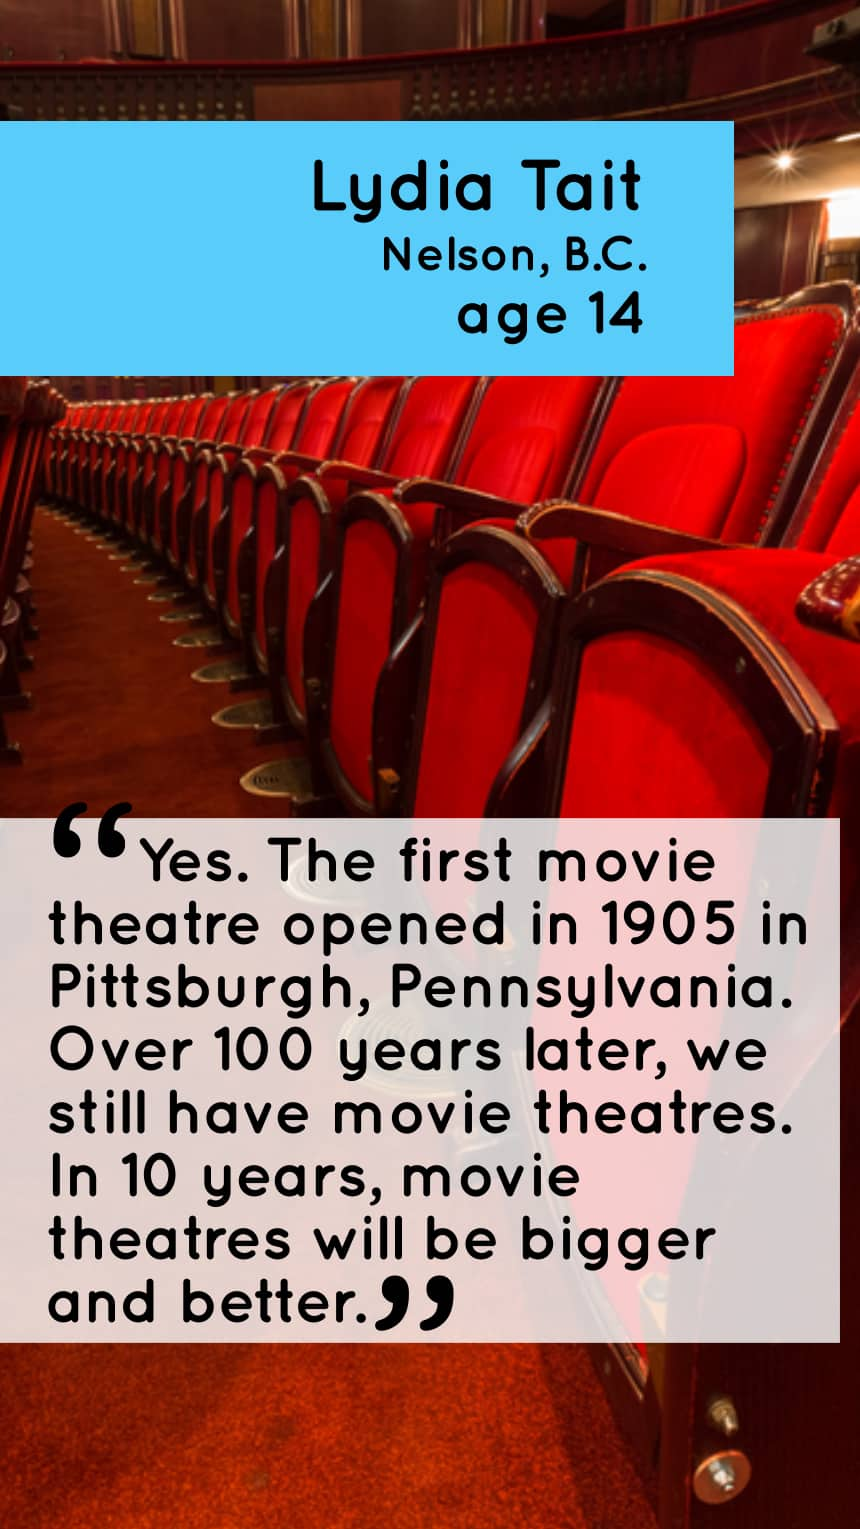 Lydia Tait Nelson, B.C. 14 Yes. The first movie theatre opened in 1905 in Pittsburgh, Pennsylvania. Over 100 years later, we still have movie theatres. In 10 years, movie theatres will be bigger and better.